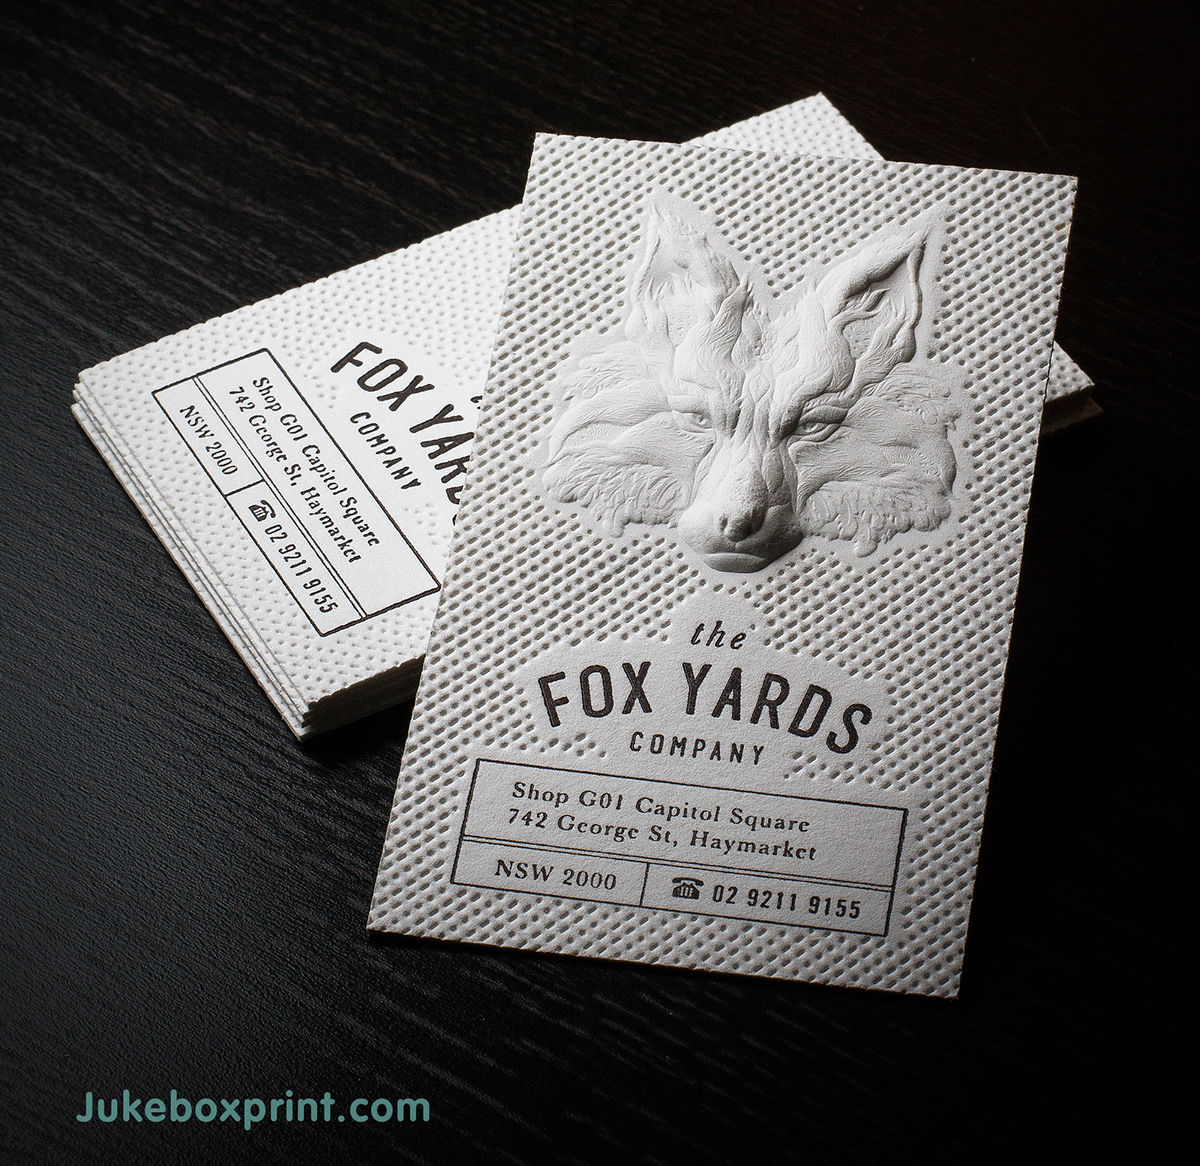 Letterpress business cards: Jukebox Print